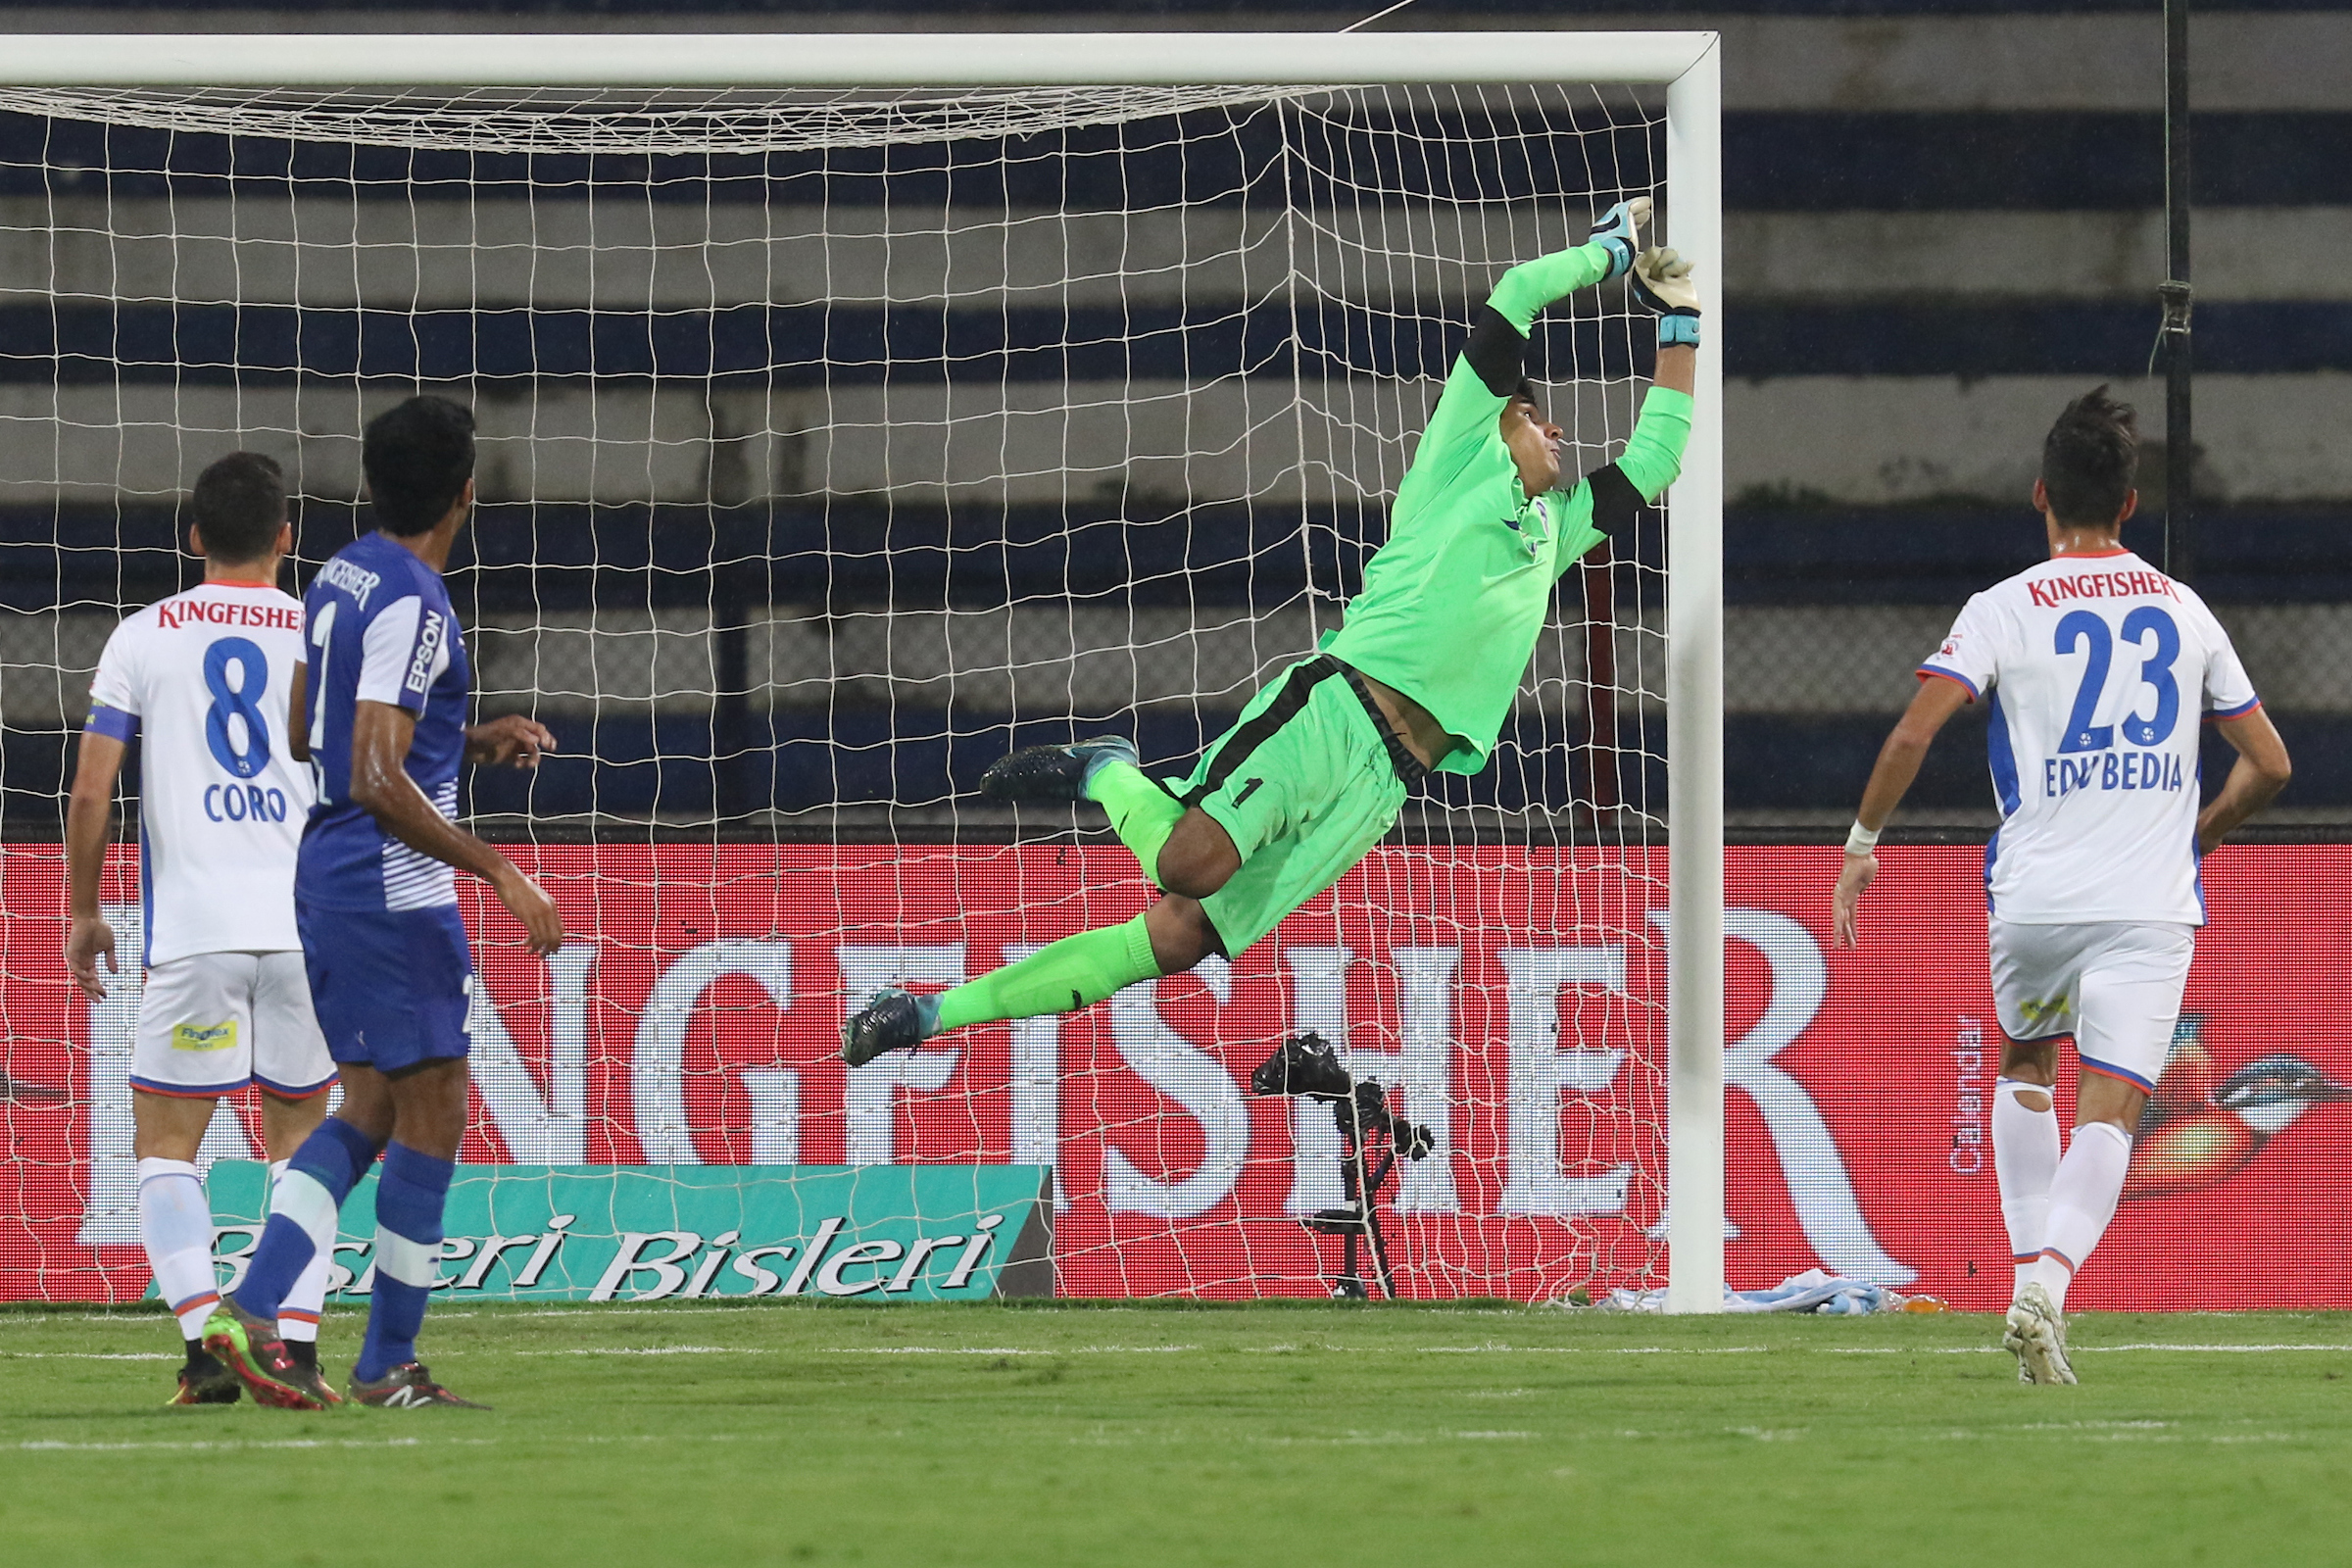 Gurpreet Singh Sandhu of Bengaluru FC saves in an ISL match against FC Goa